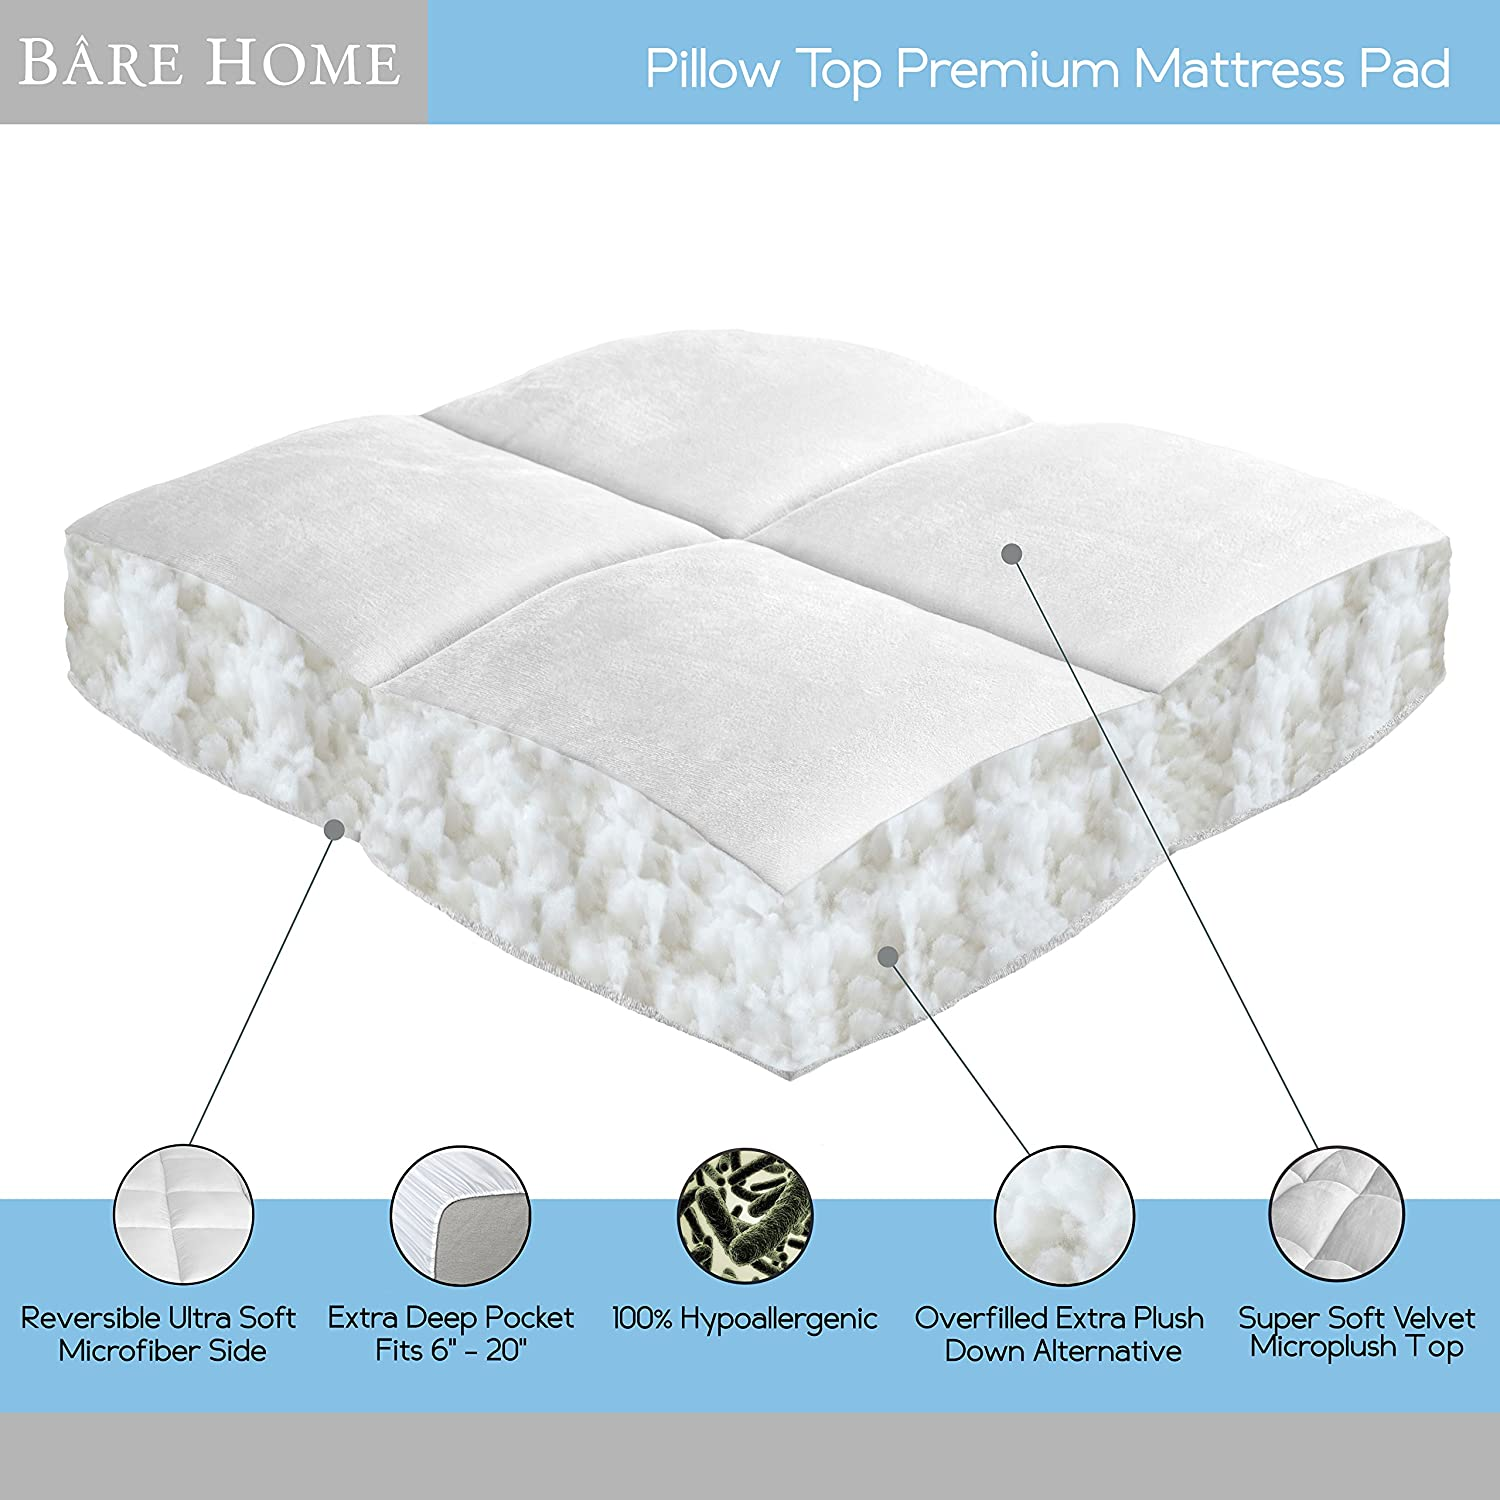 bamboo inch pads pillowtop mlily best memory serenity mattress top image pillow foam mattresses reviews